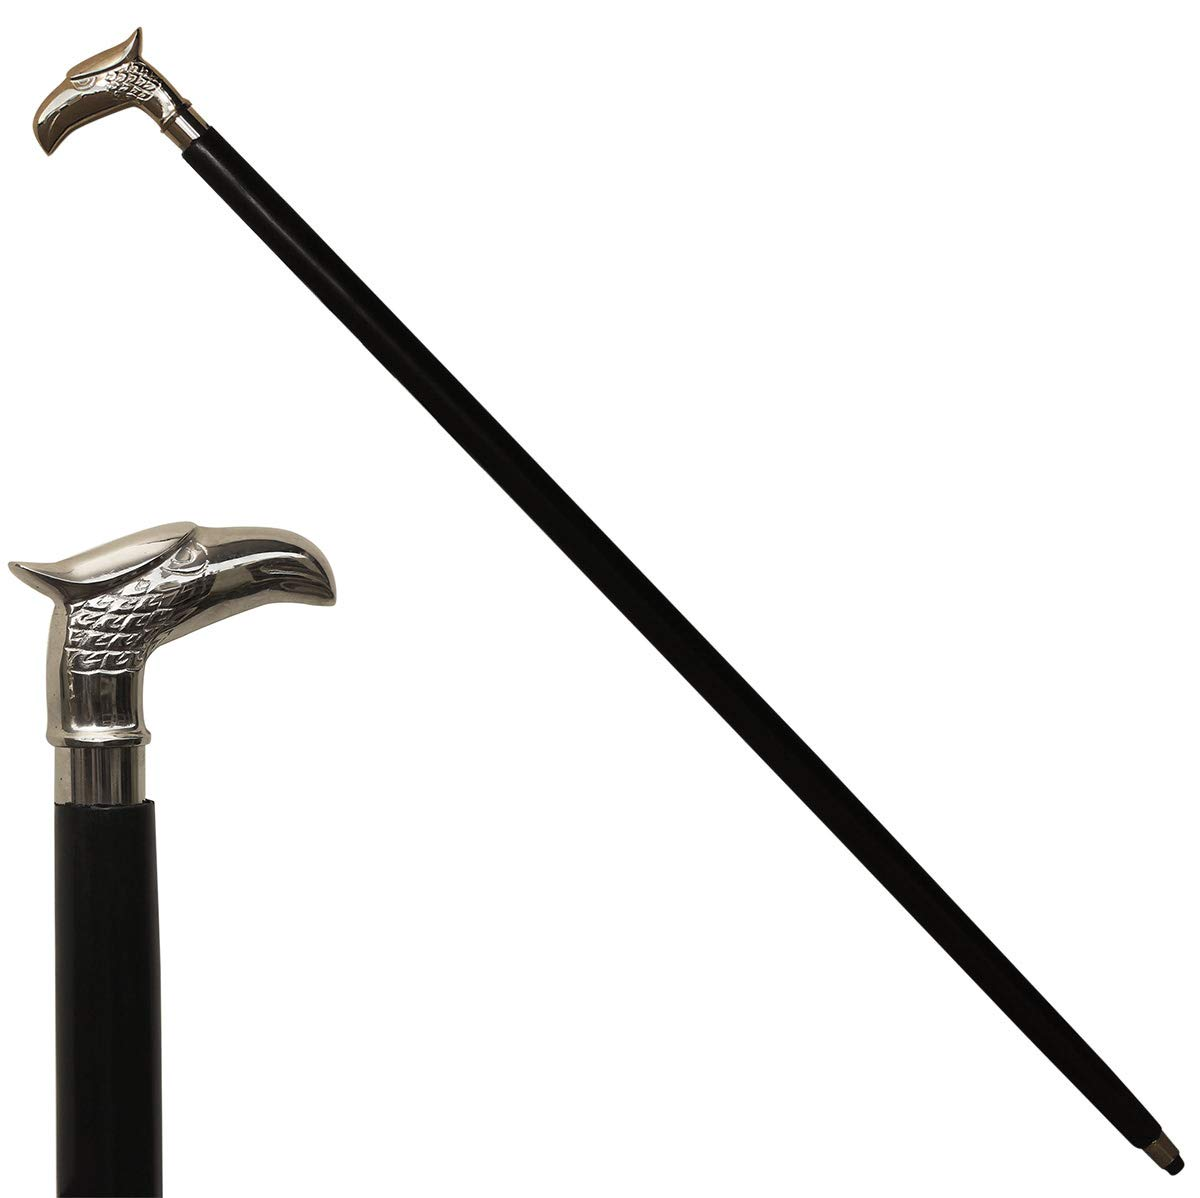 Crafkart Offer on Eagle Walking Stick - Decorative Cane Walking Stick for Men and Women - Wooden Canes and Walking Sticks with Metal Brass Silver Handle - Symbol of Power and Strength